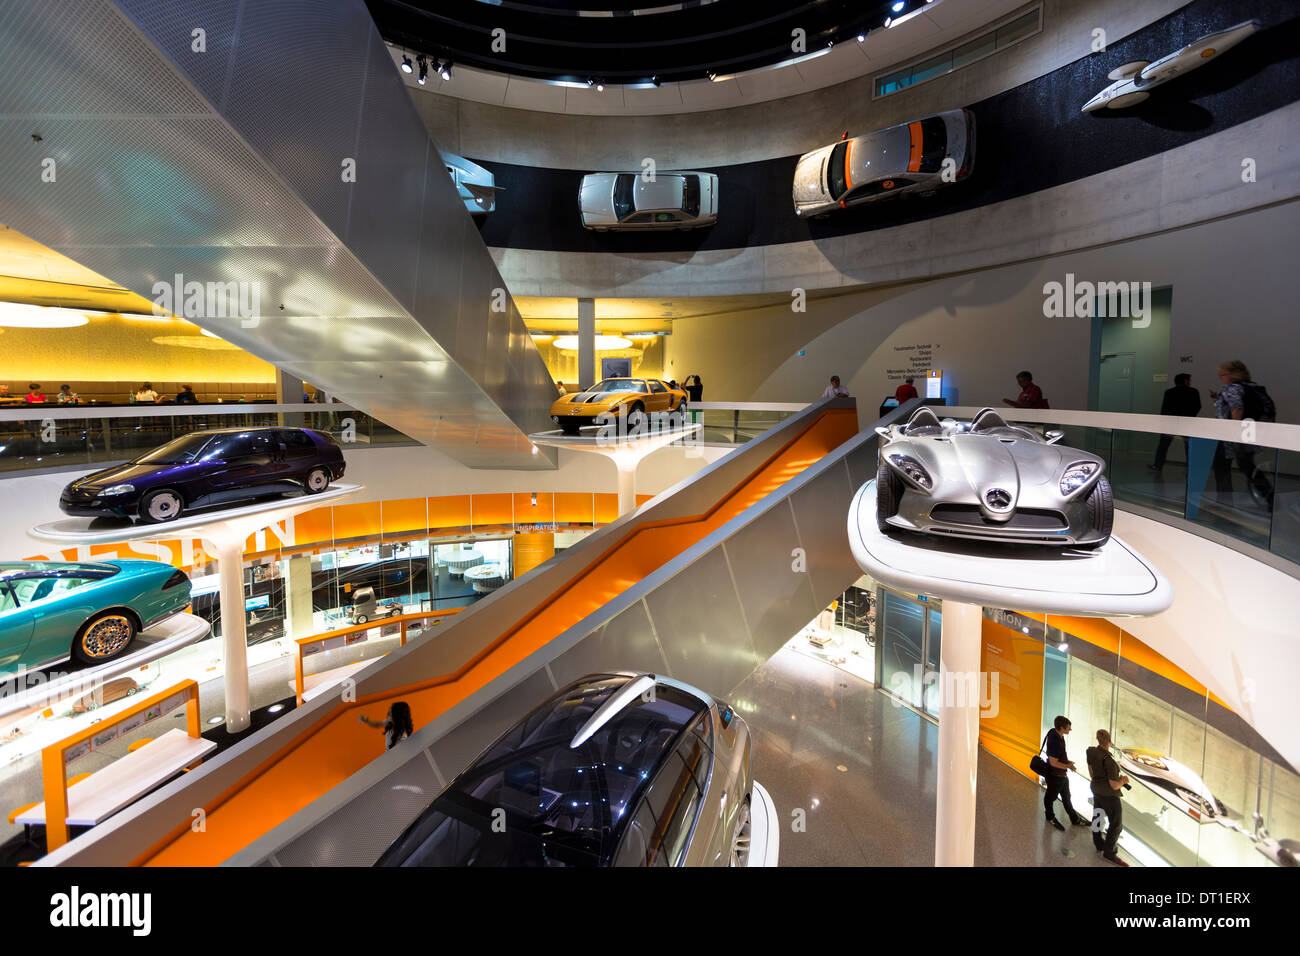 Mercedes-Benz concept cars in museum gallery in Stuttgart, Bavaria, Germany F400 Carving V6 from 2001 (silver), C111 from 1970 - Stock Image